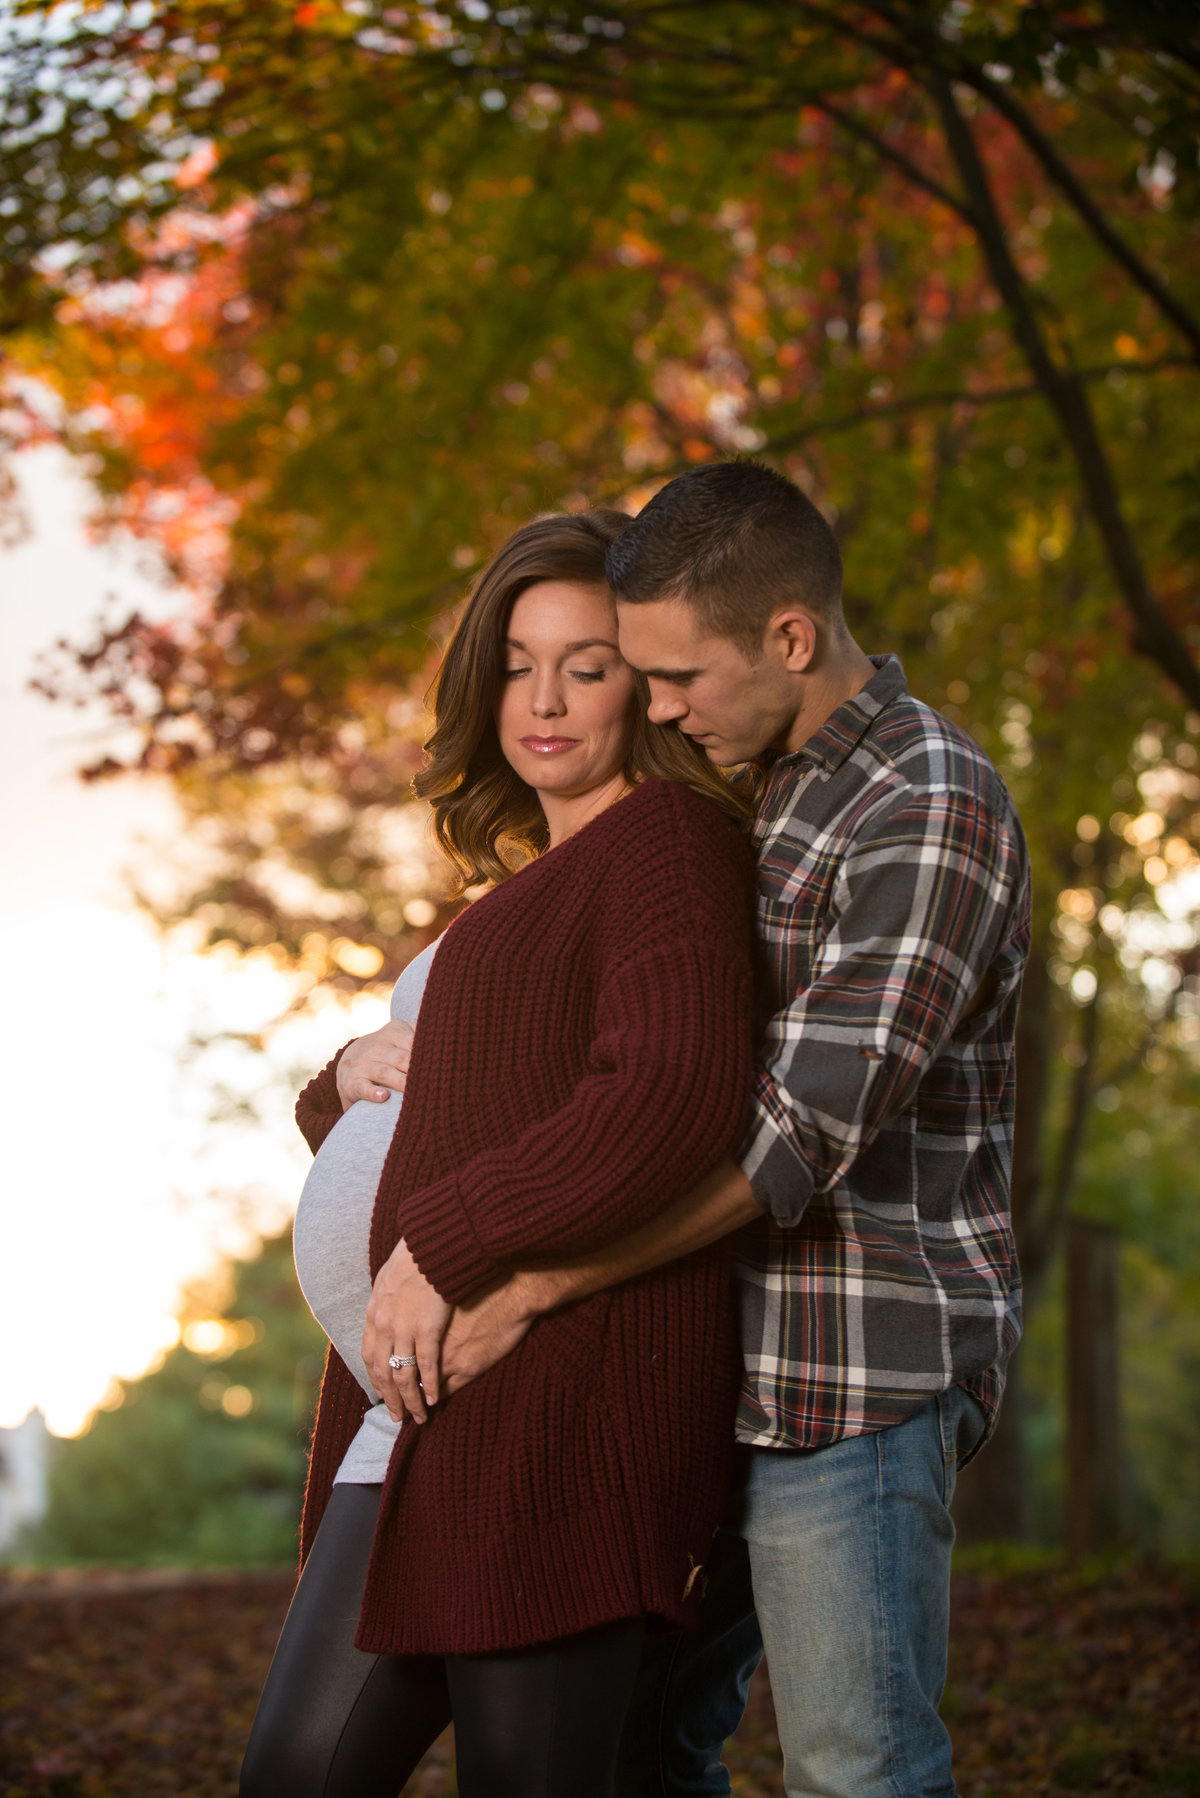 We specialize in pregnancy photography in the beautiful outdoor locations Baltimore has to offer